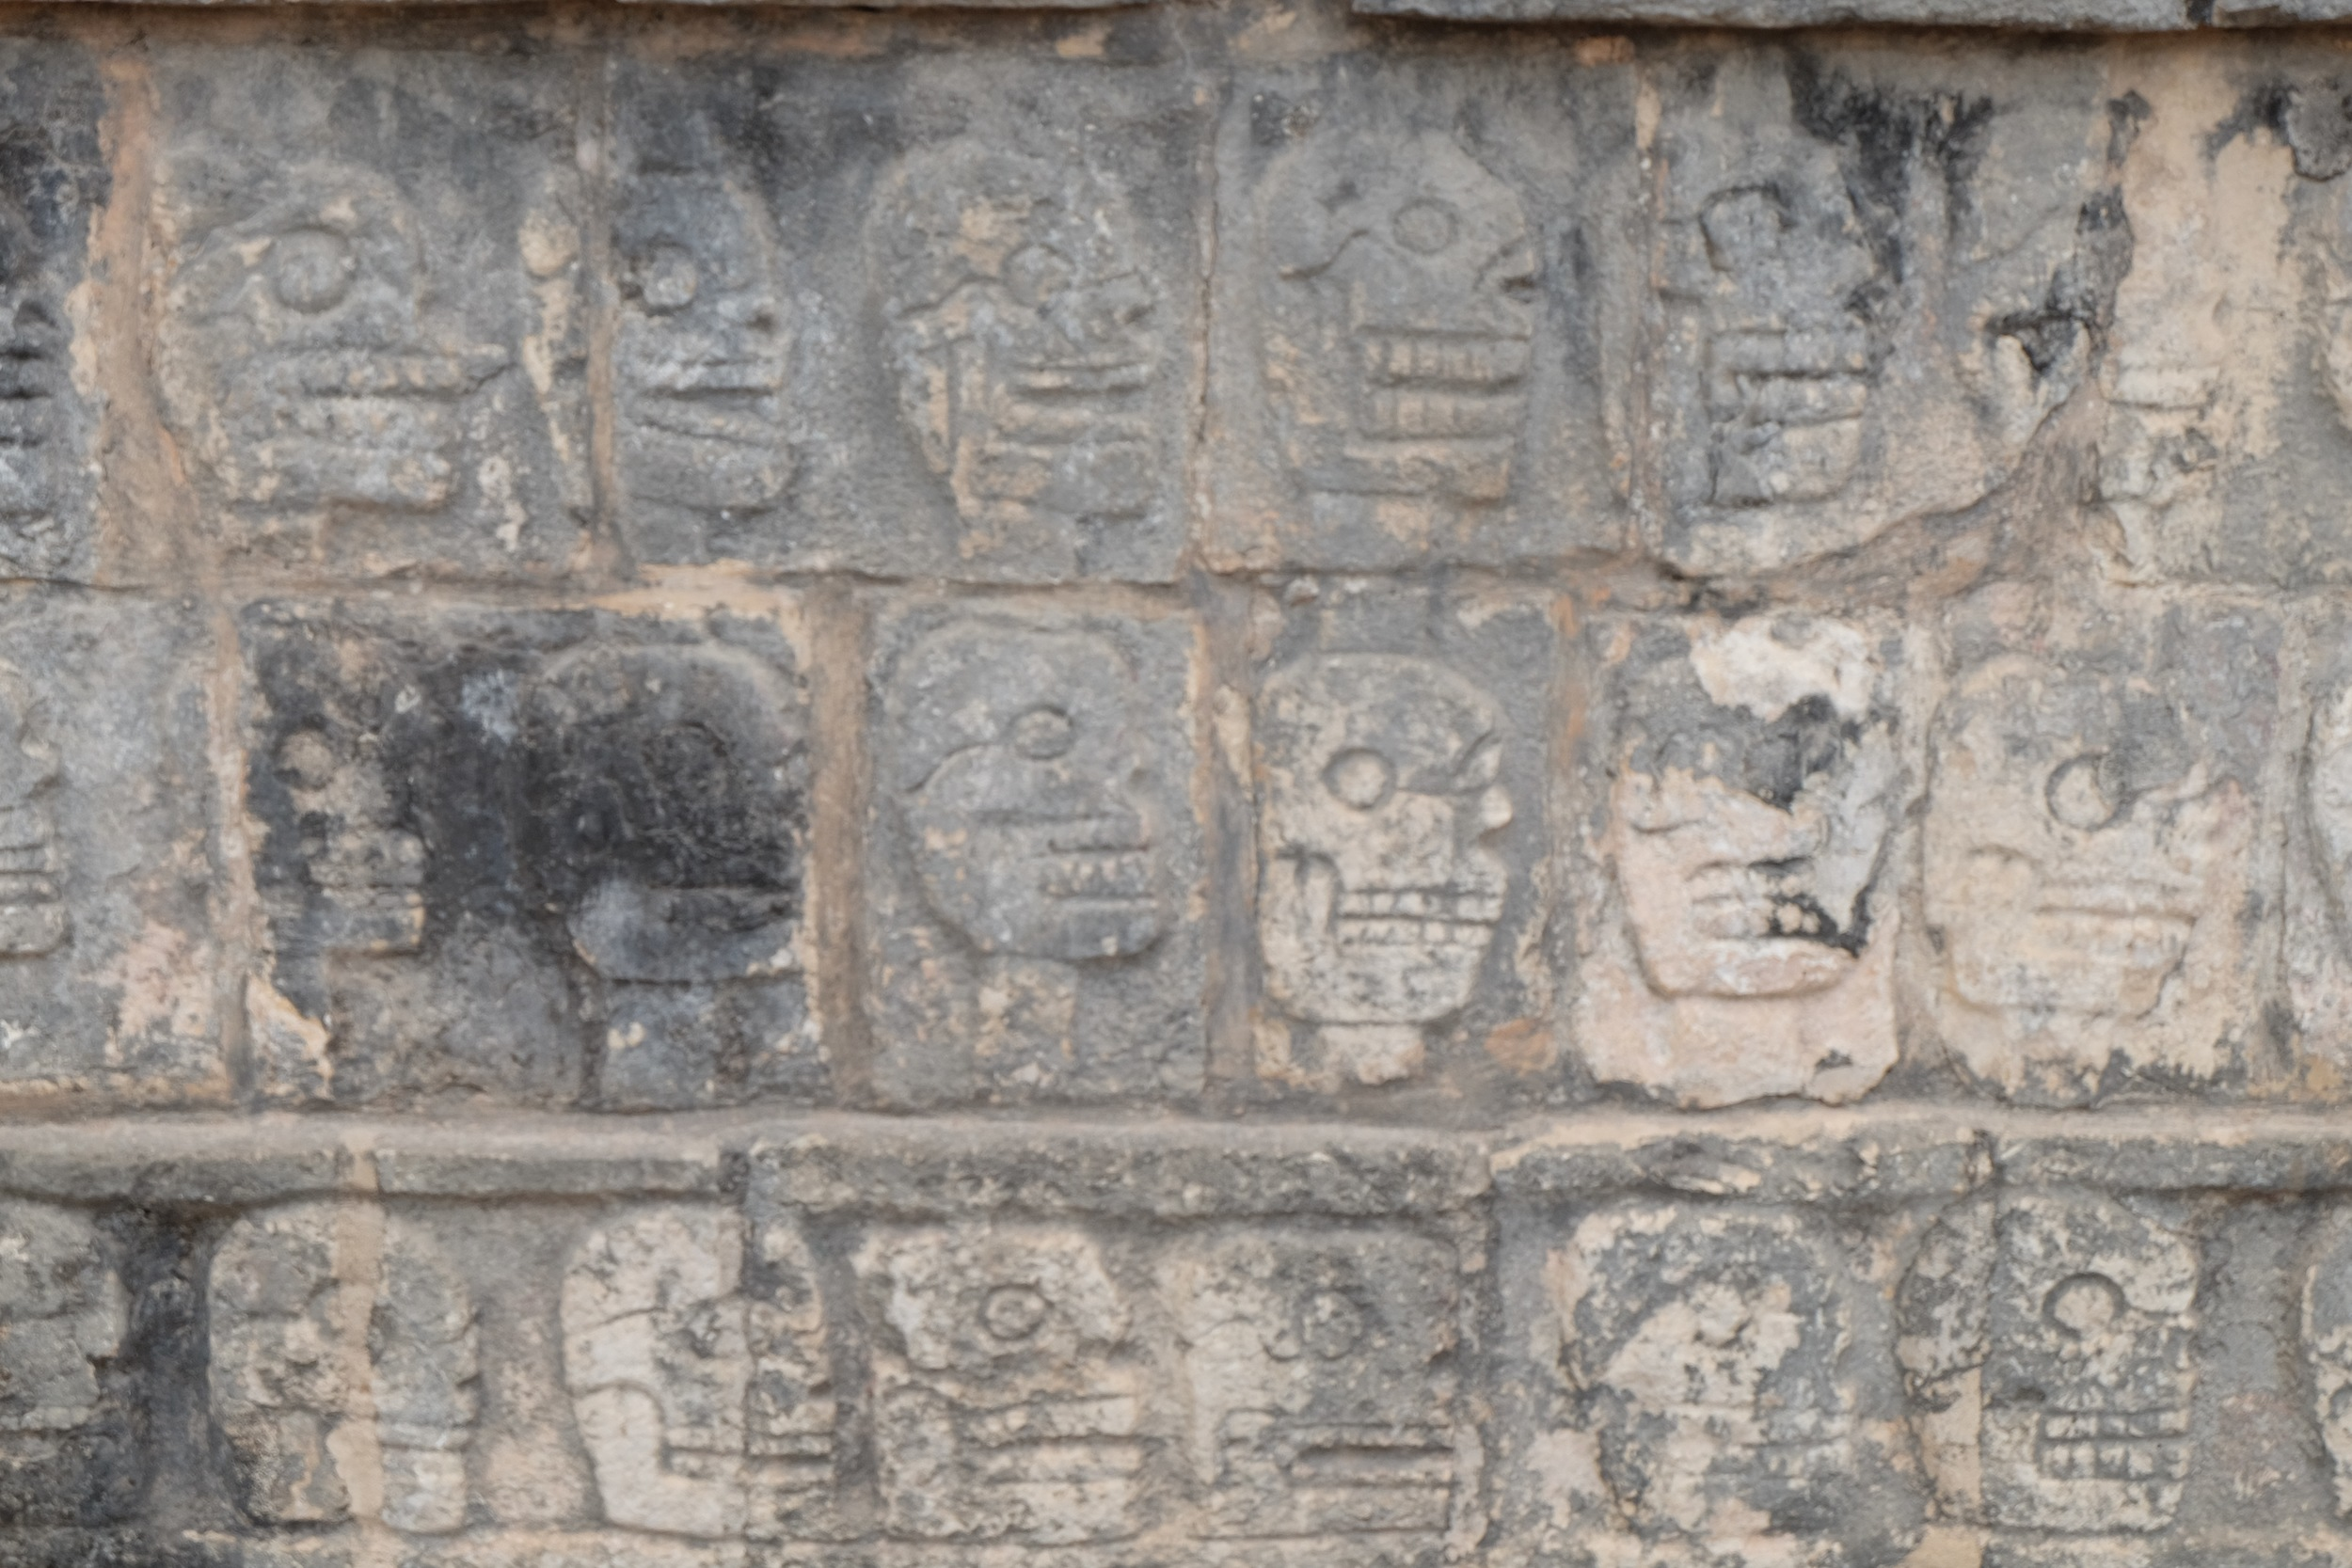 Carvings from Chichen Itza